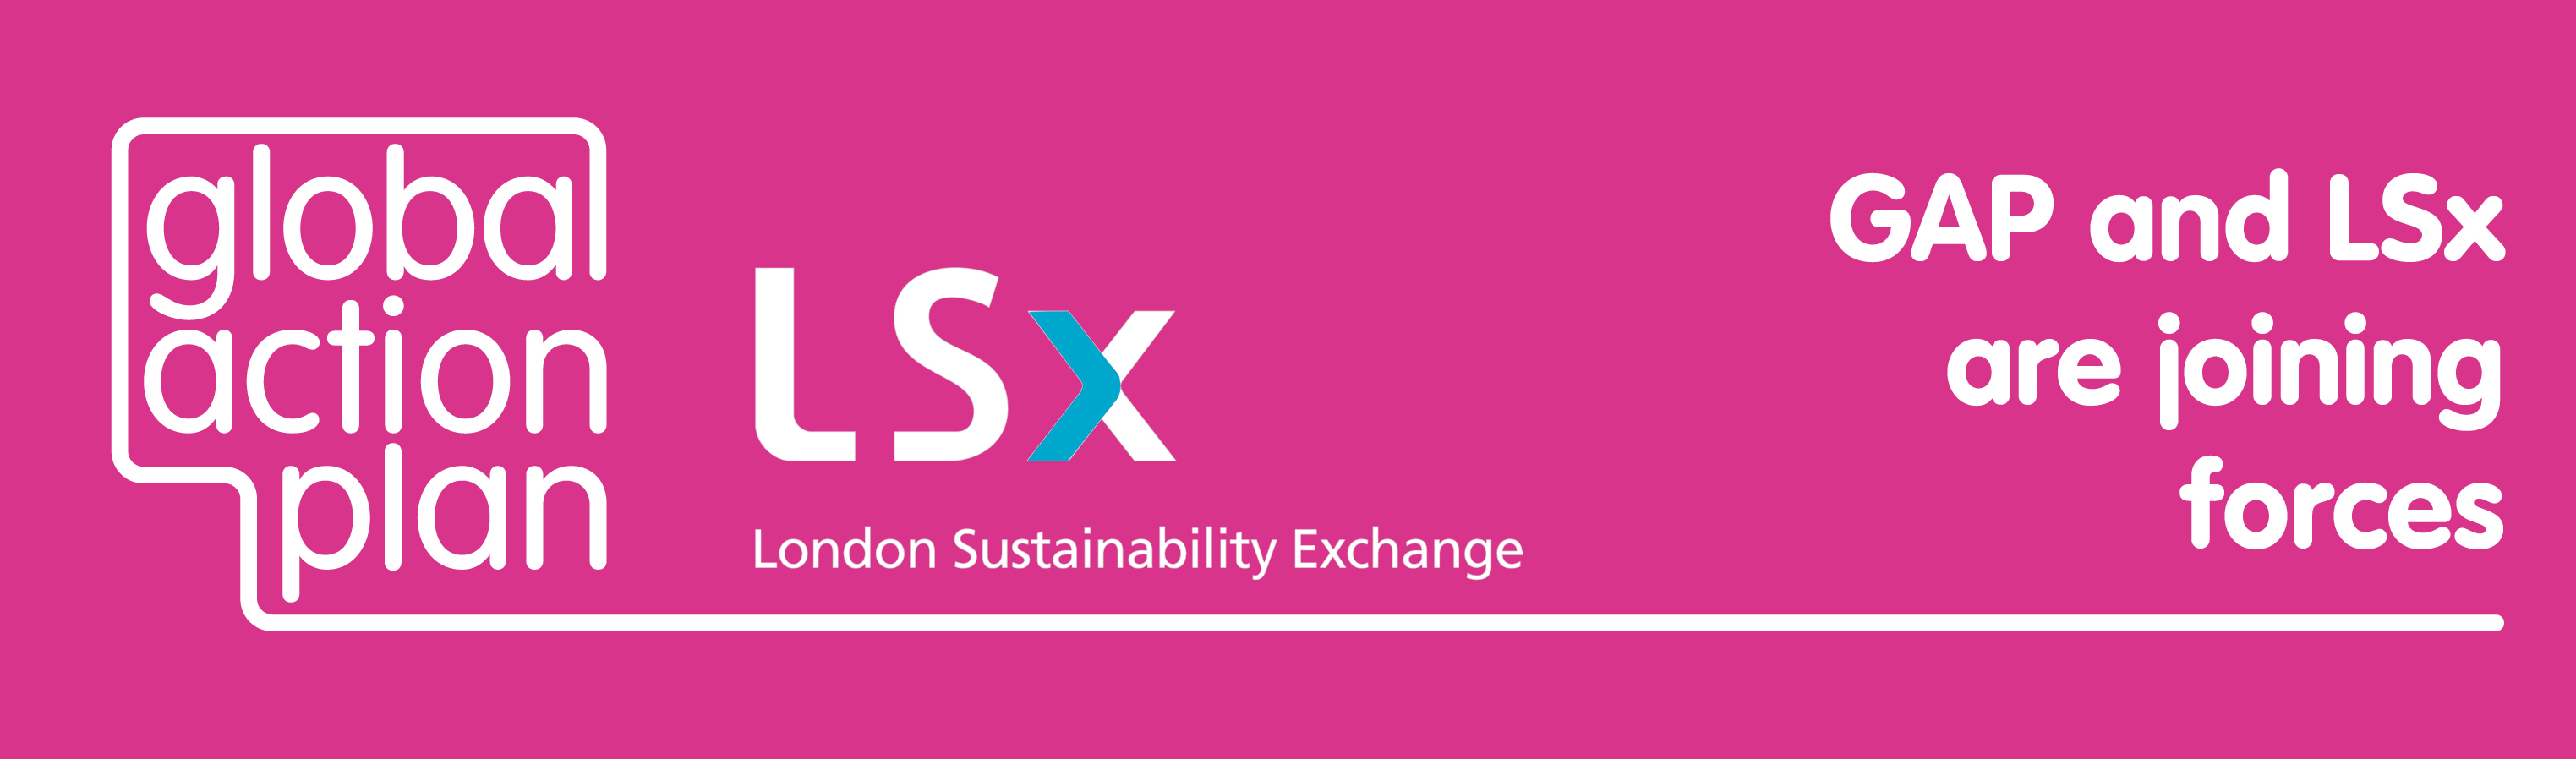 "A banner showing the Global Action Plan and London Sustainability Exchange logos together, with the words ""GAP and LSx are joining forces"""